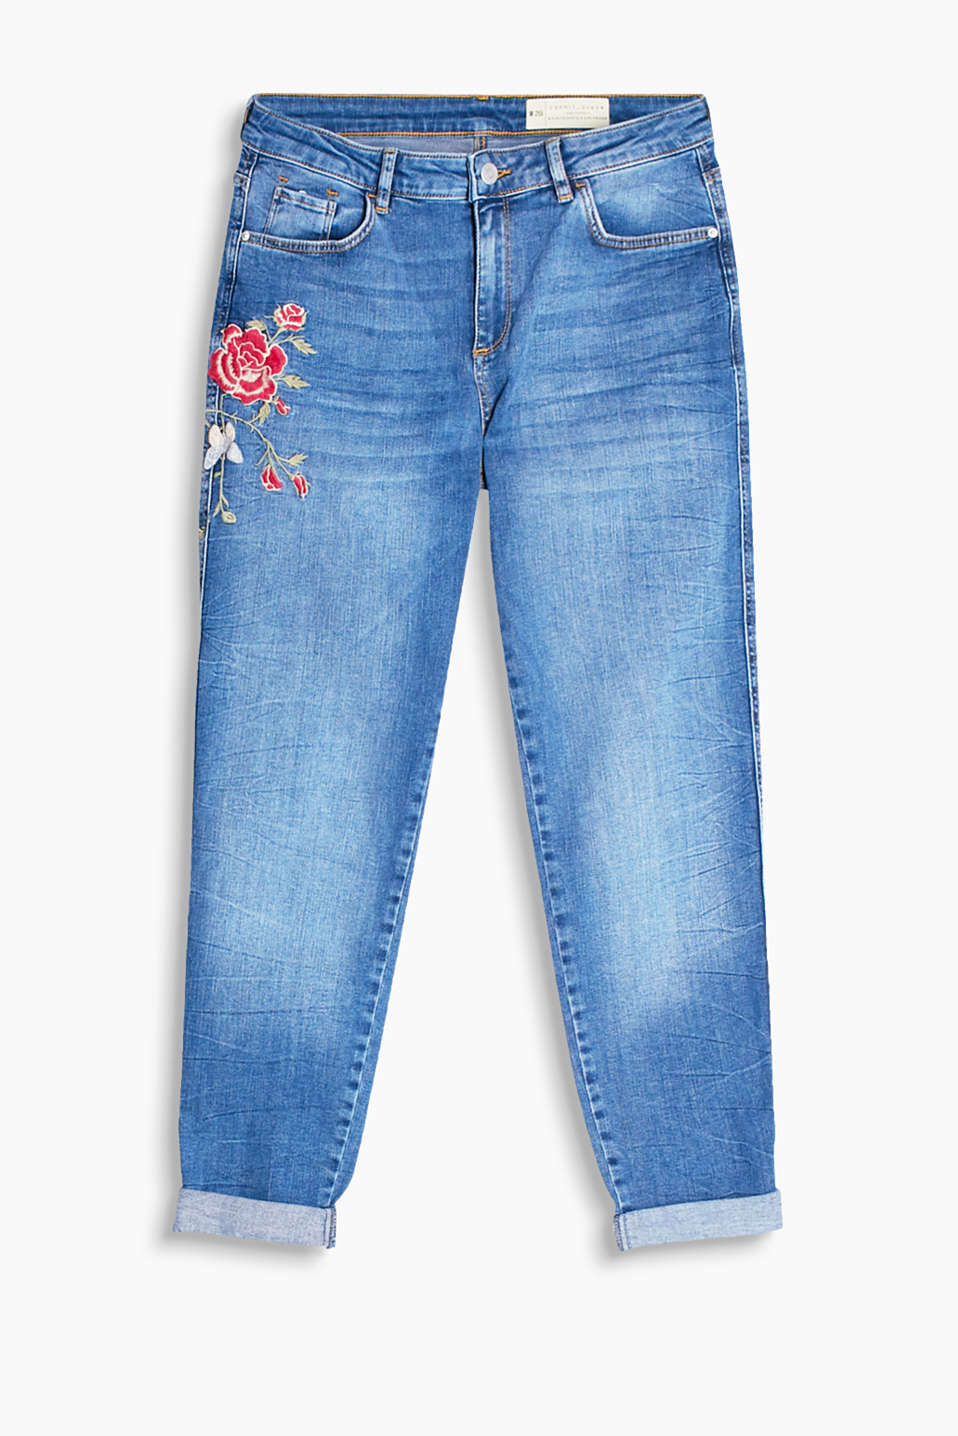 Casual stretchjeans med blomsterbroderi